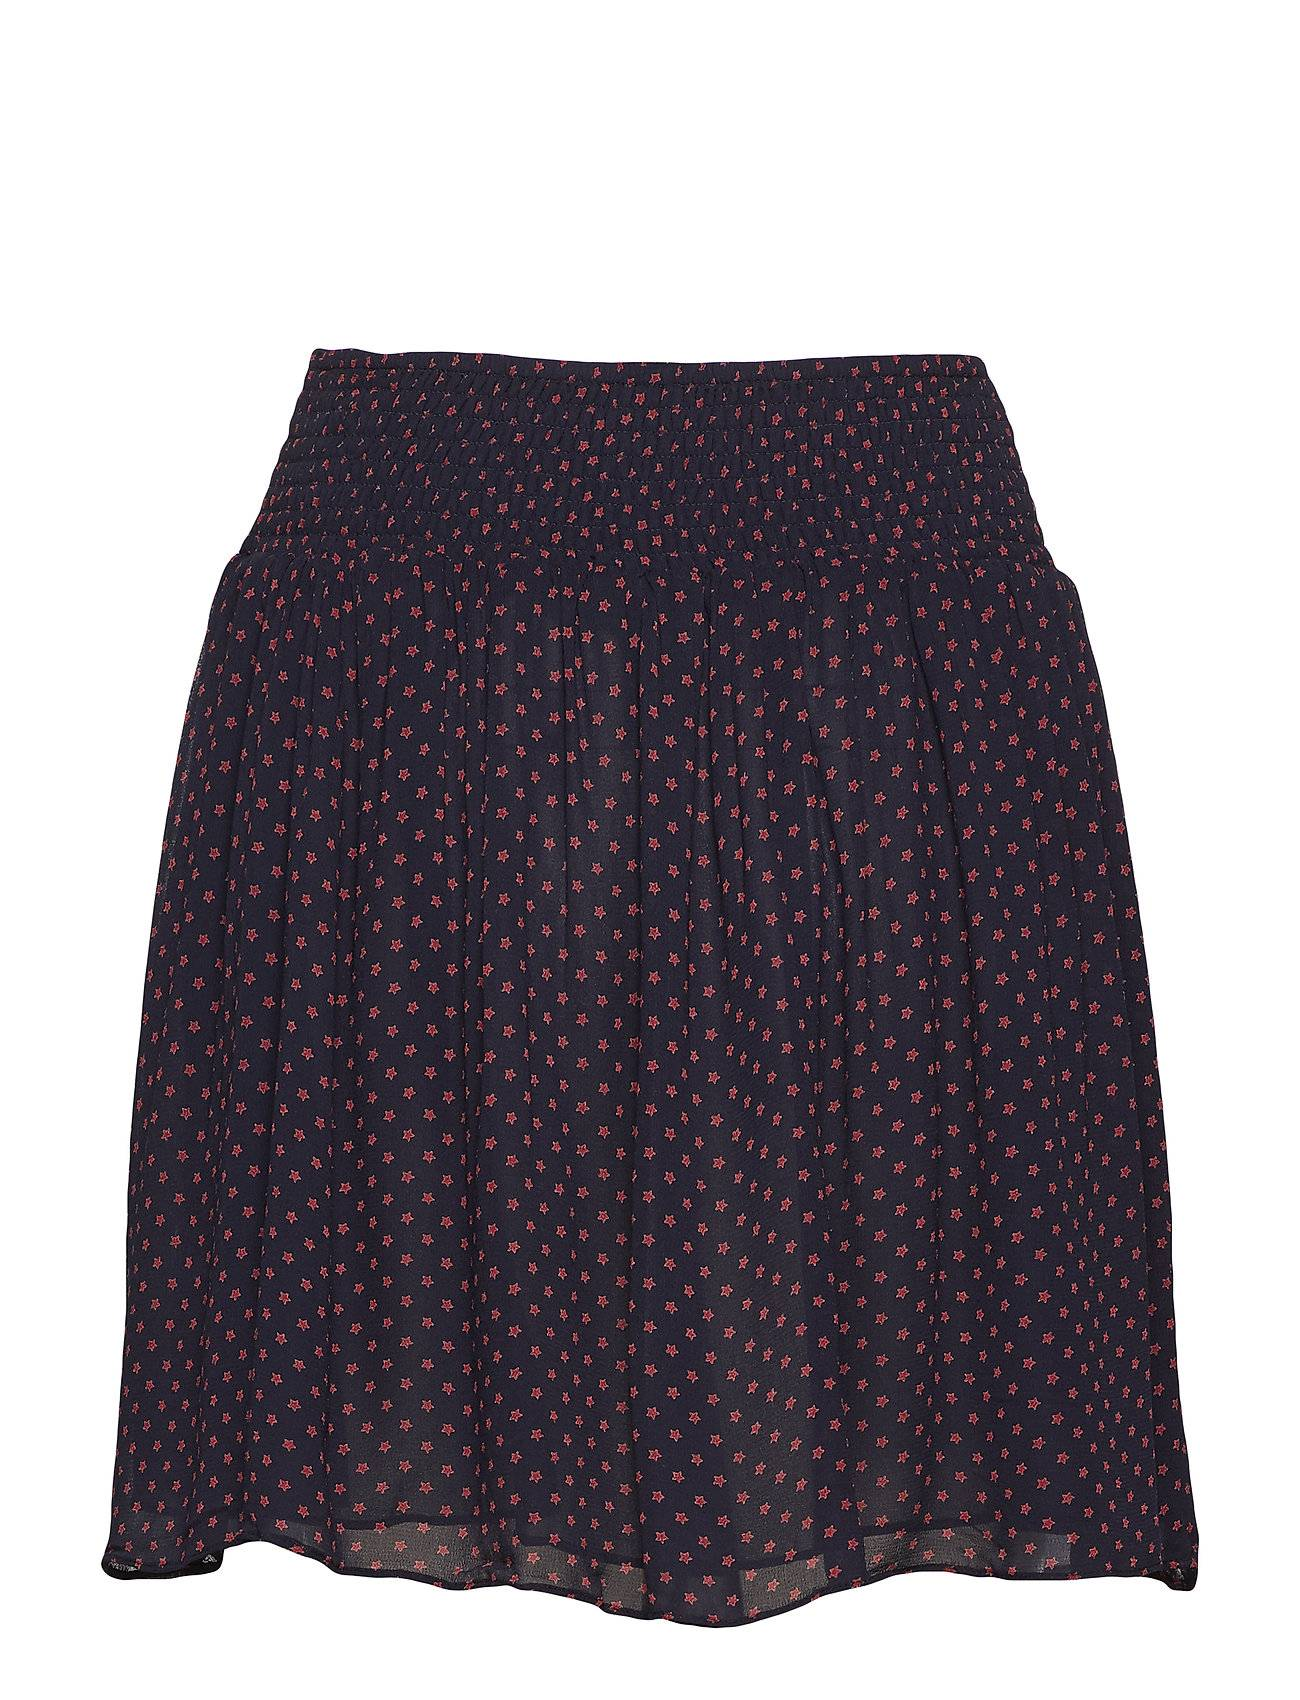 Hunkydory Bart Star Skirt